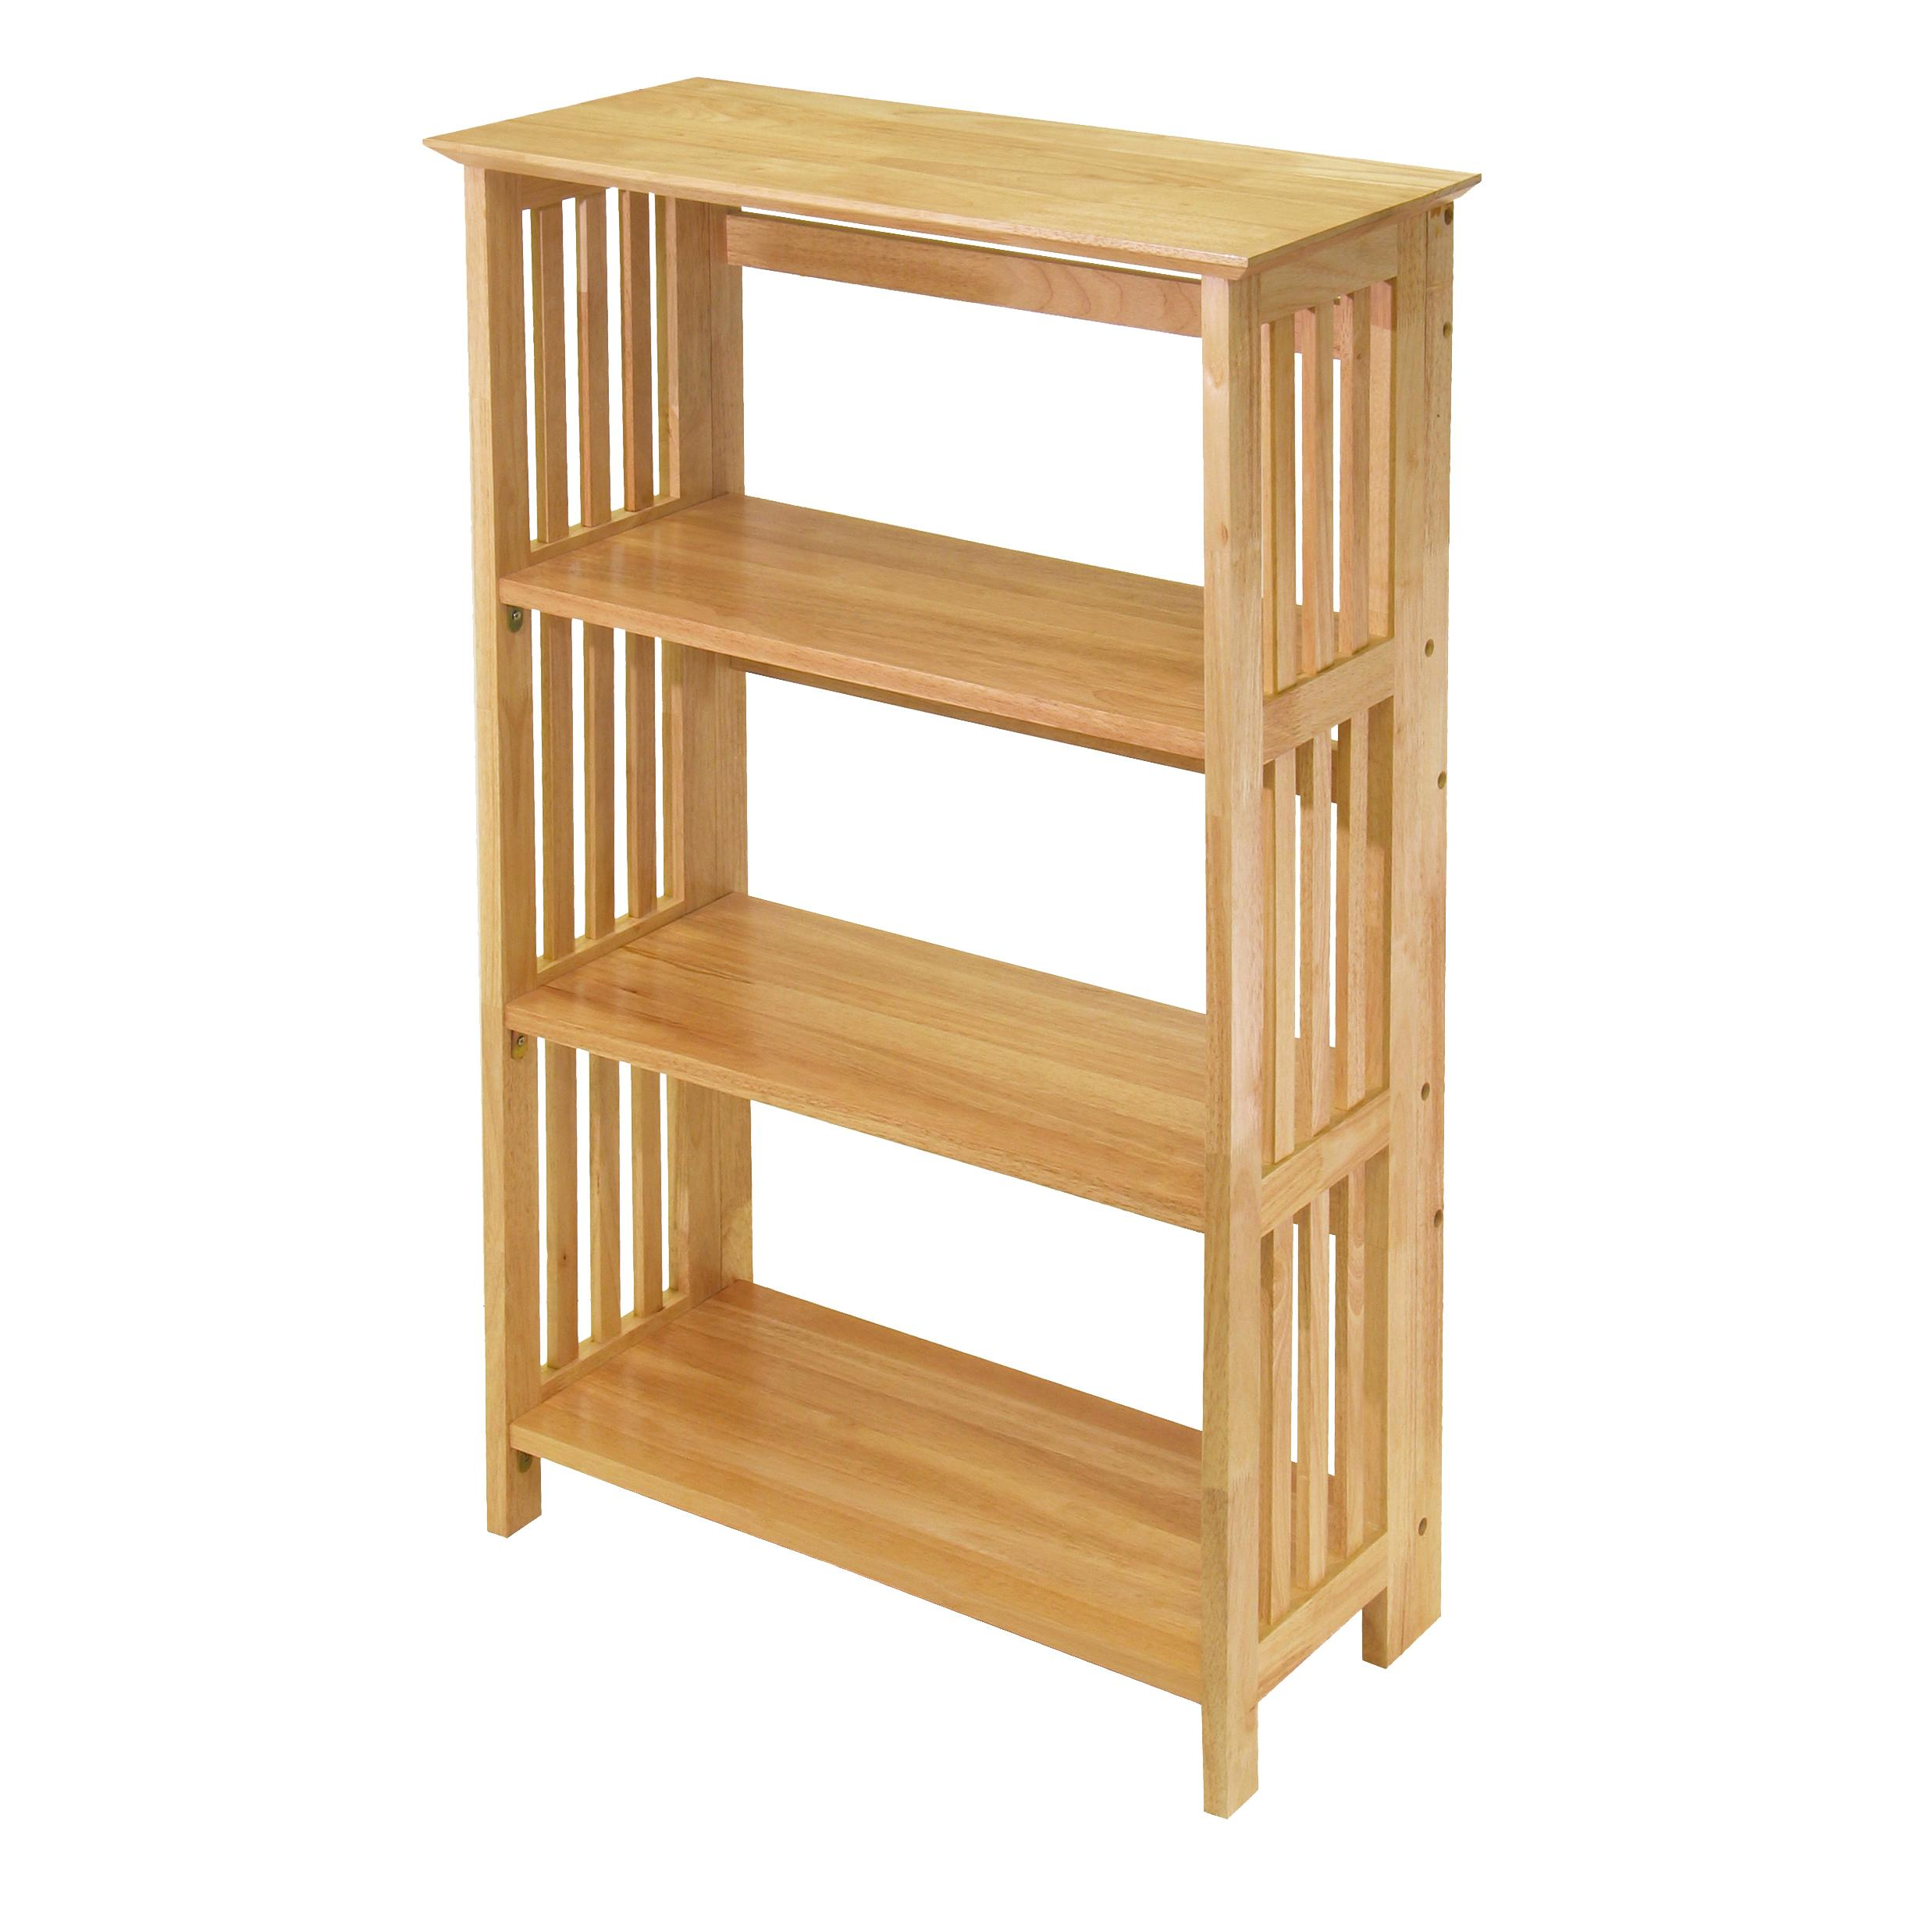 Amazon Com Winsome Wood Foldable 4 Tier Shelf Natural